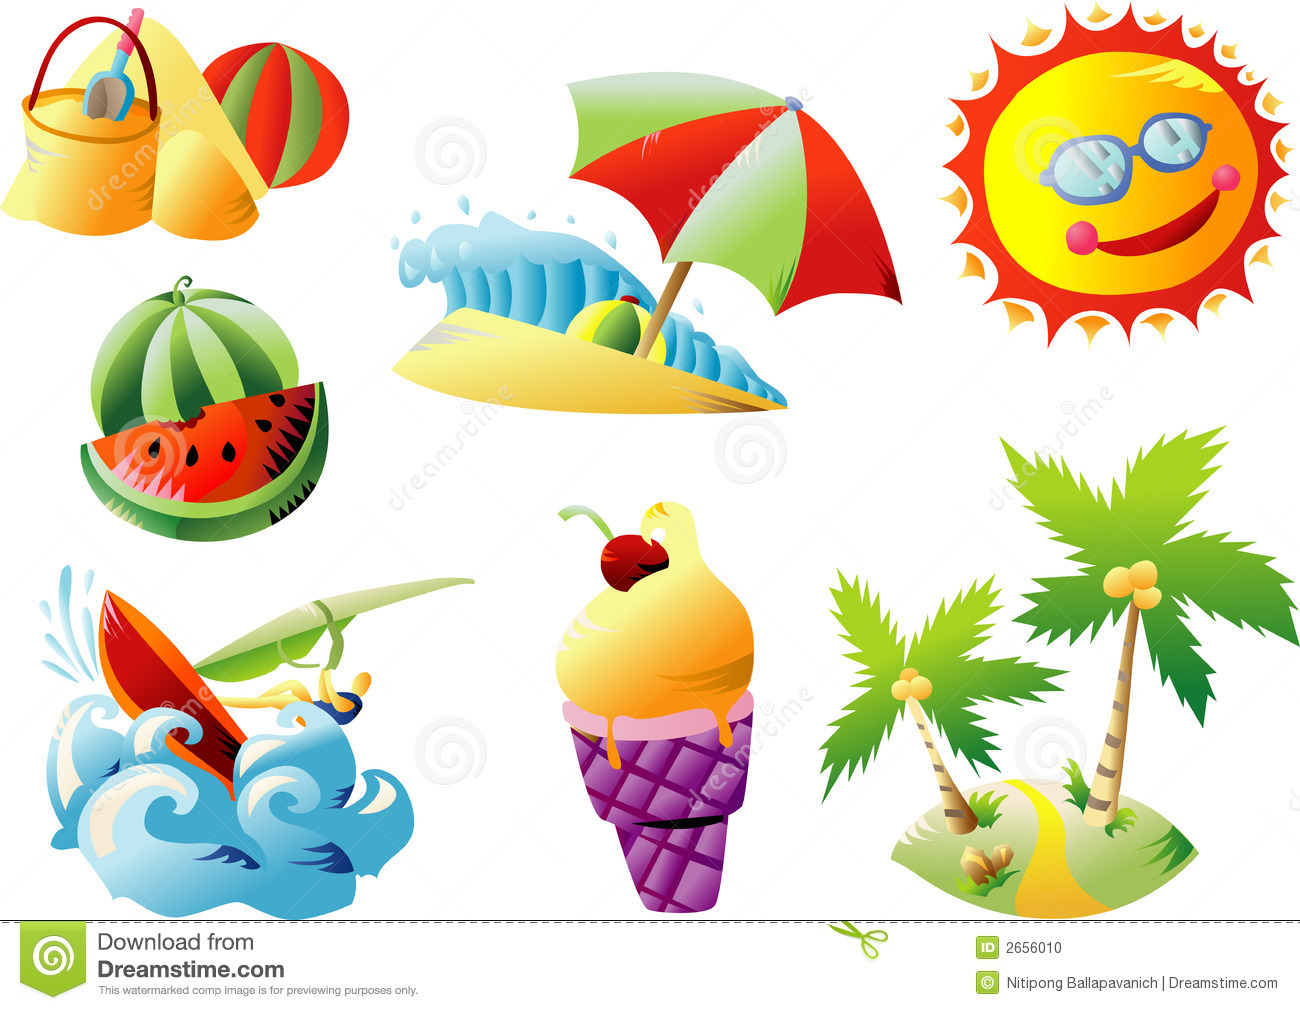 Clipart summer pictures vector black and white download 57+ Summer Images Clip Art | ClipartLook vector black and white download